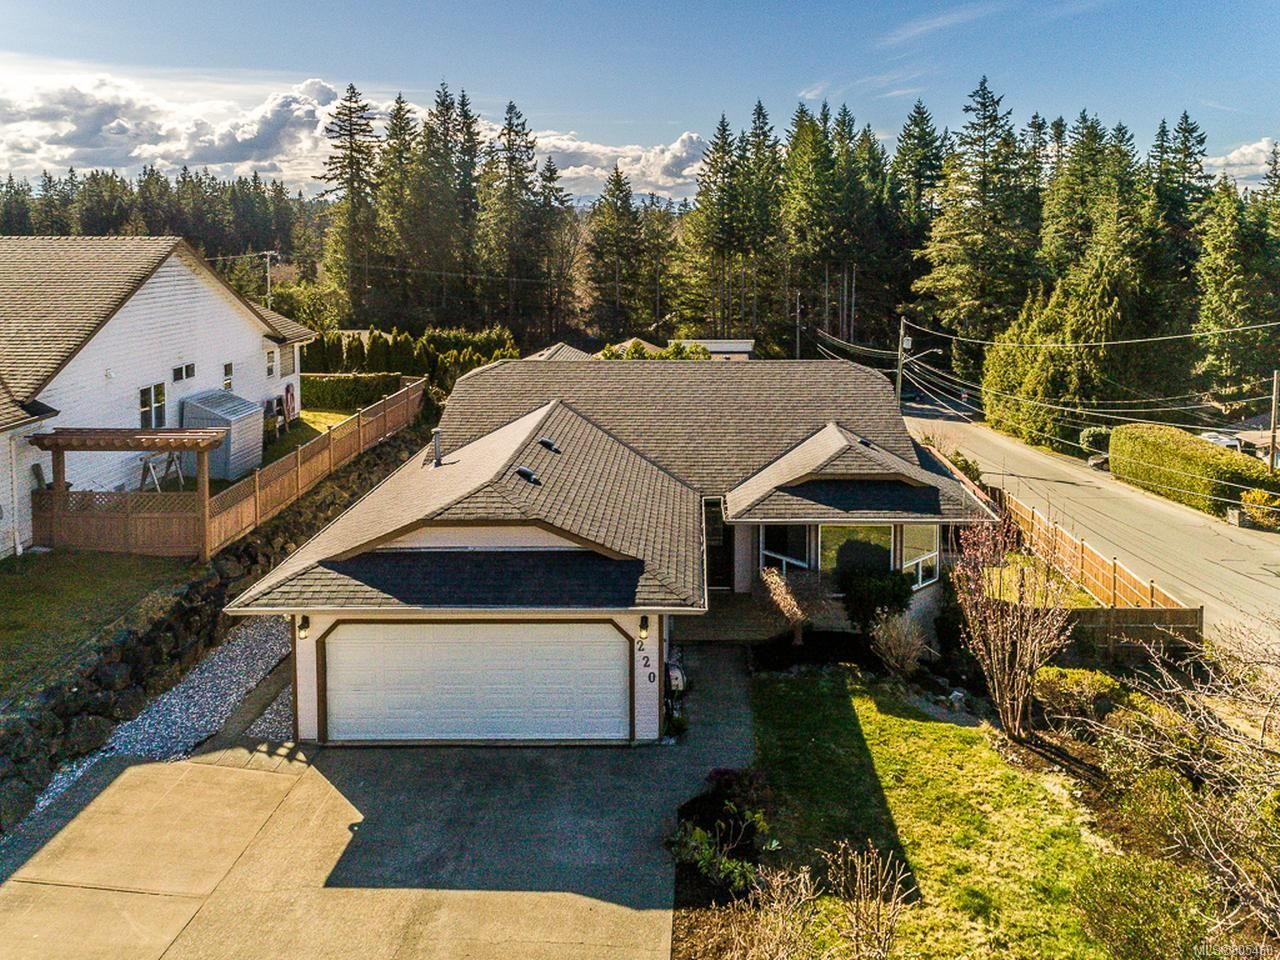 Main Photo: 220 STRATFORD DRIVE in CAMPBELL RIVER: CR Campbell River Central House for sale (Campbell River)  : MLS®# 805460